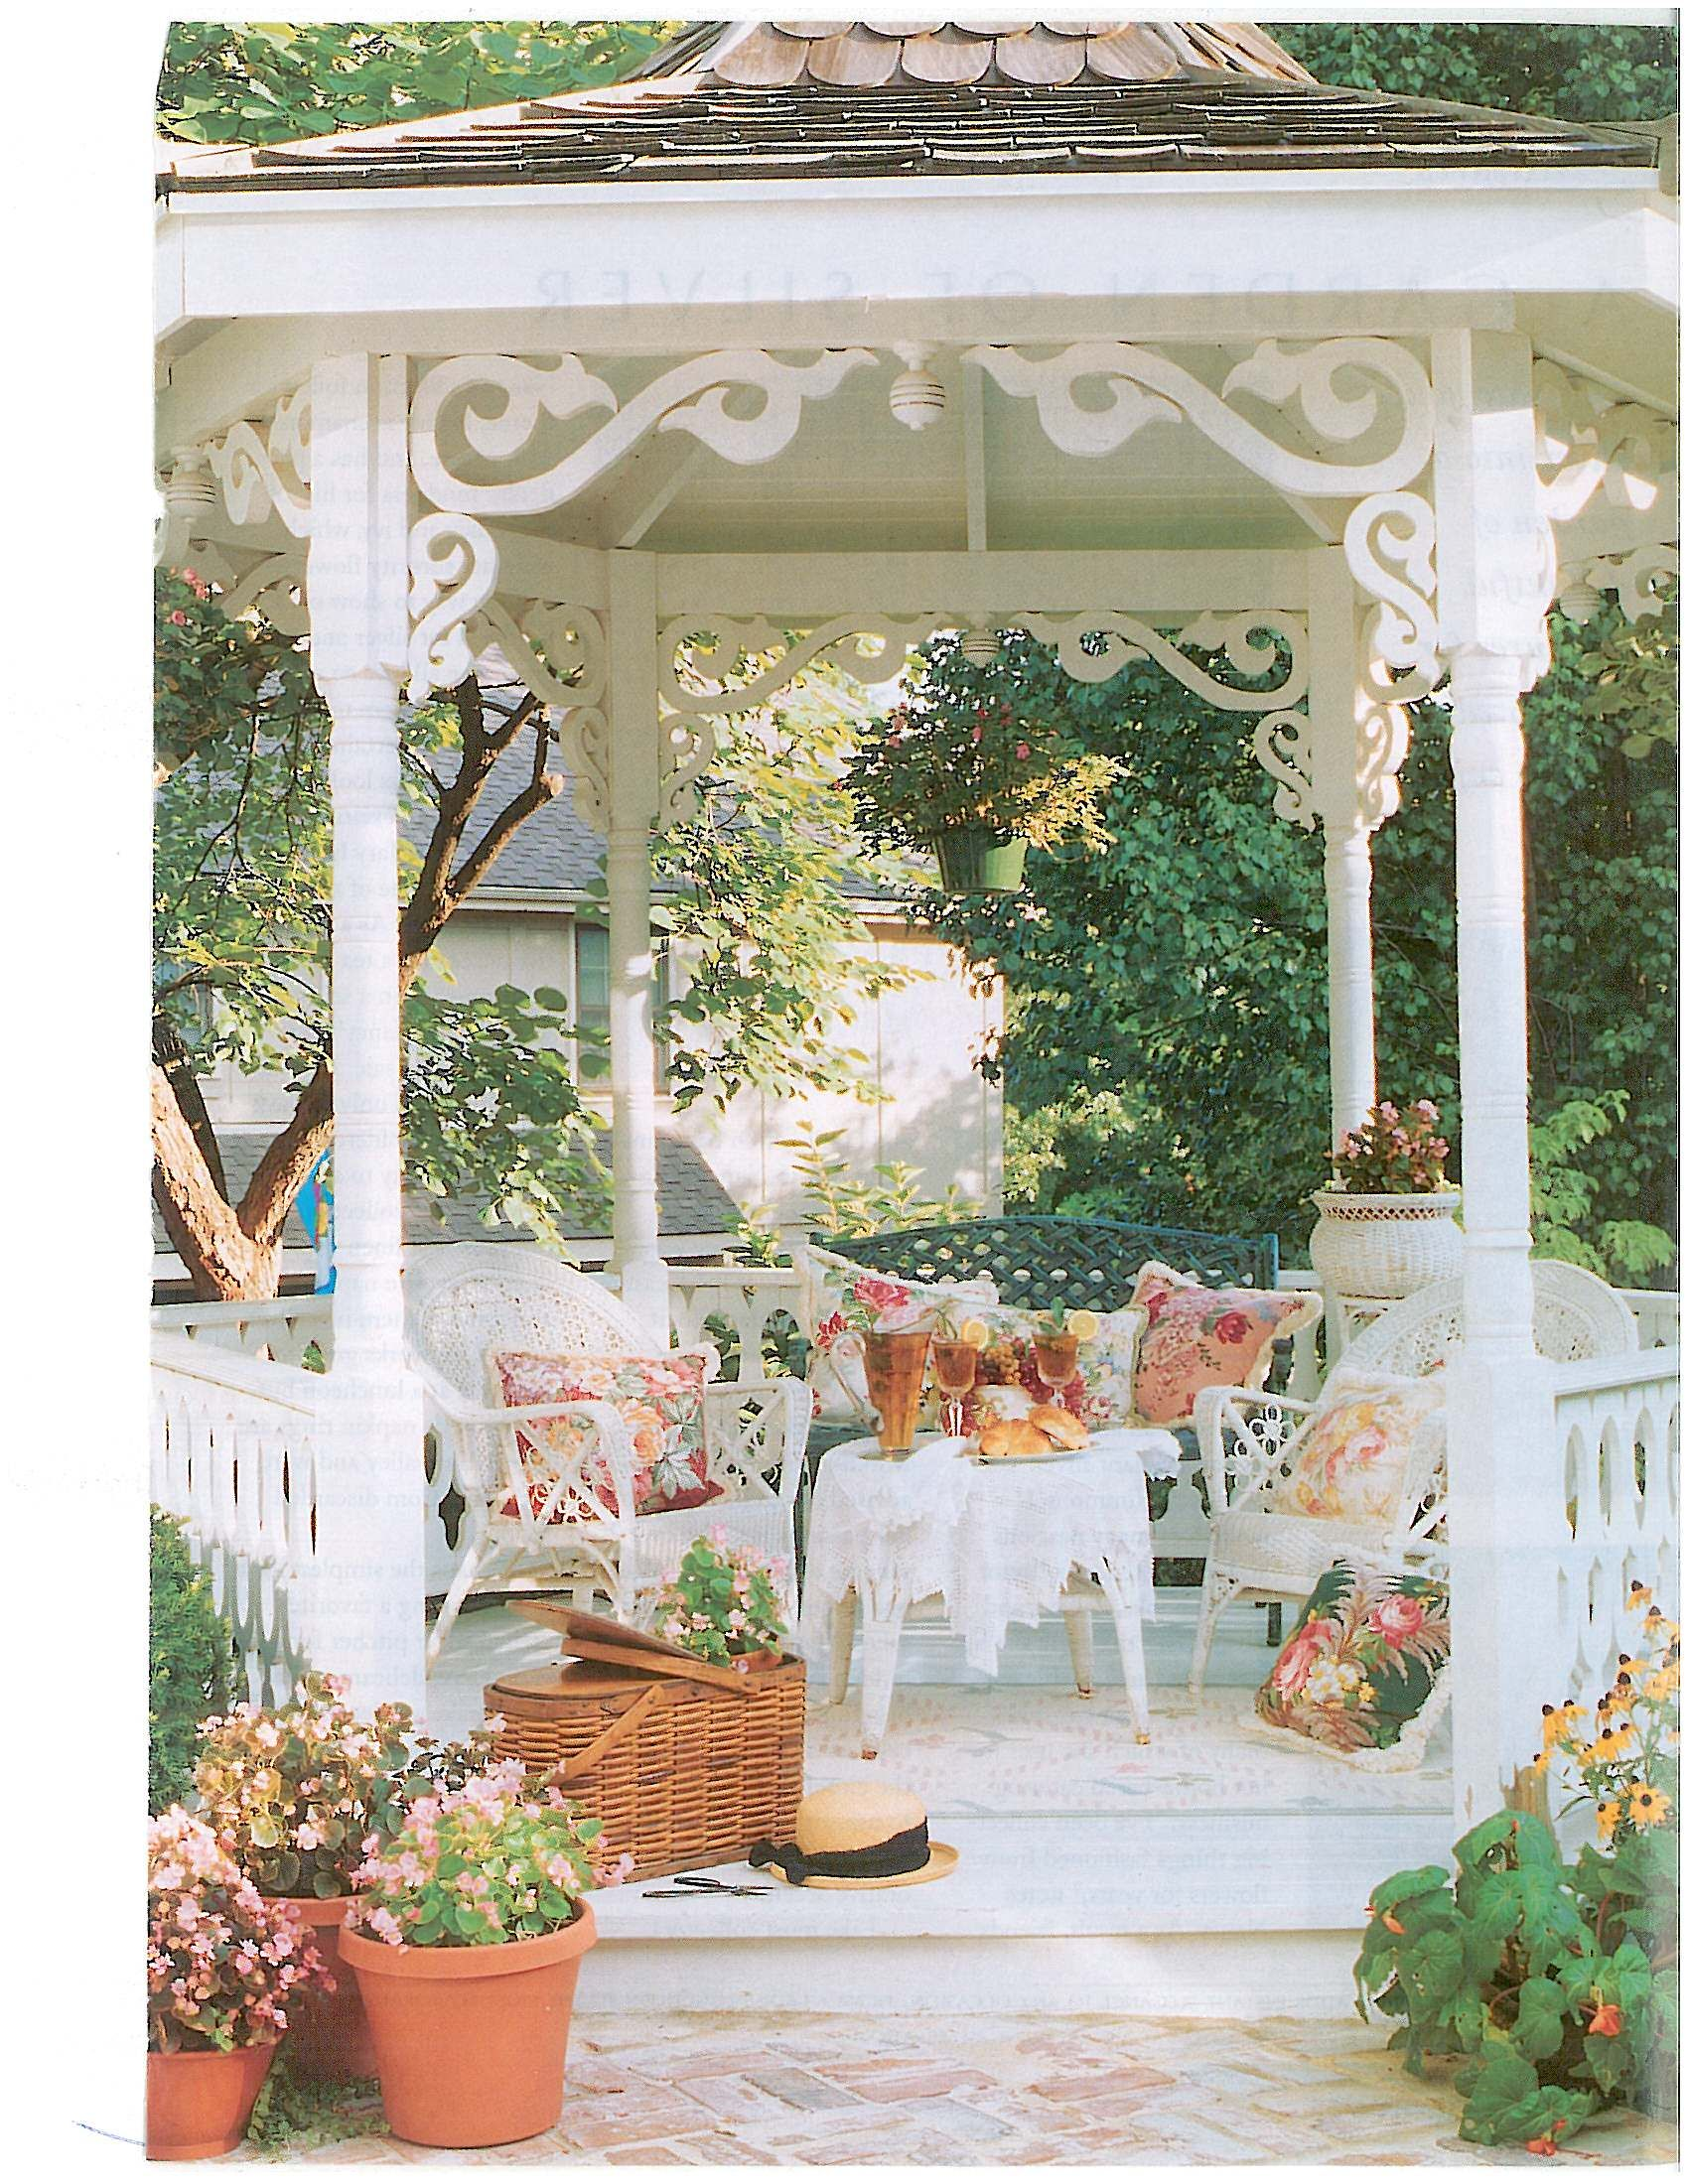 Beautiful Gazebo | Sun Room/Patio | Design Jardin, Gloriette, Joli ...